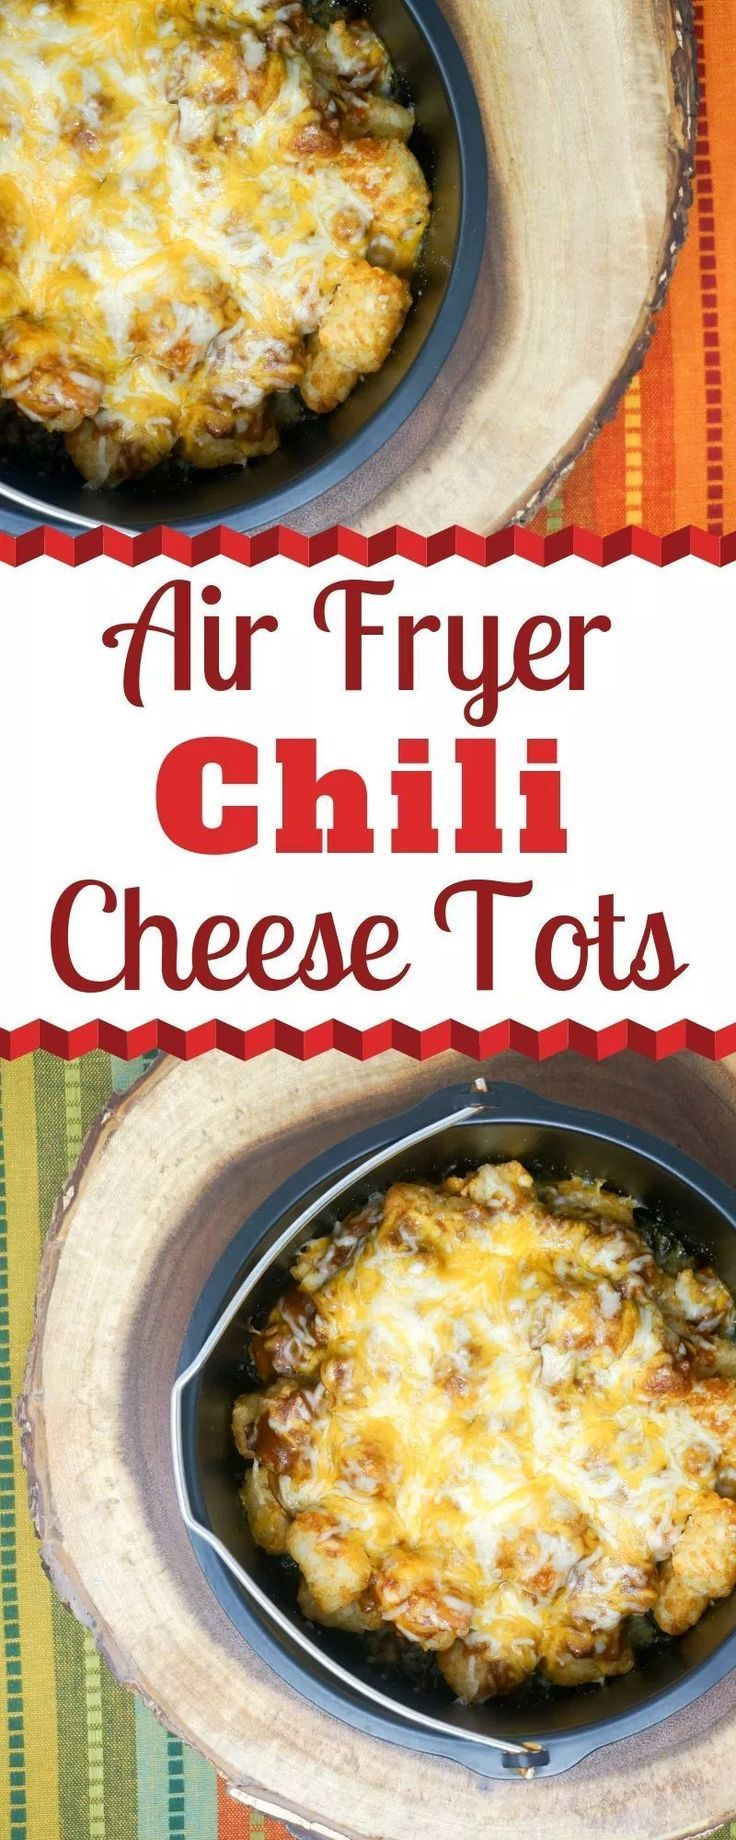 Air Fryer Chili Cheese Tots Recipe Air fryer recipes